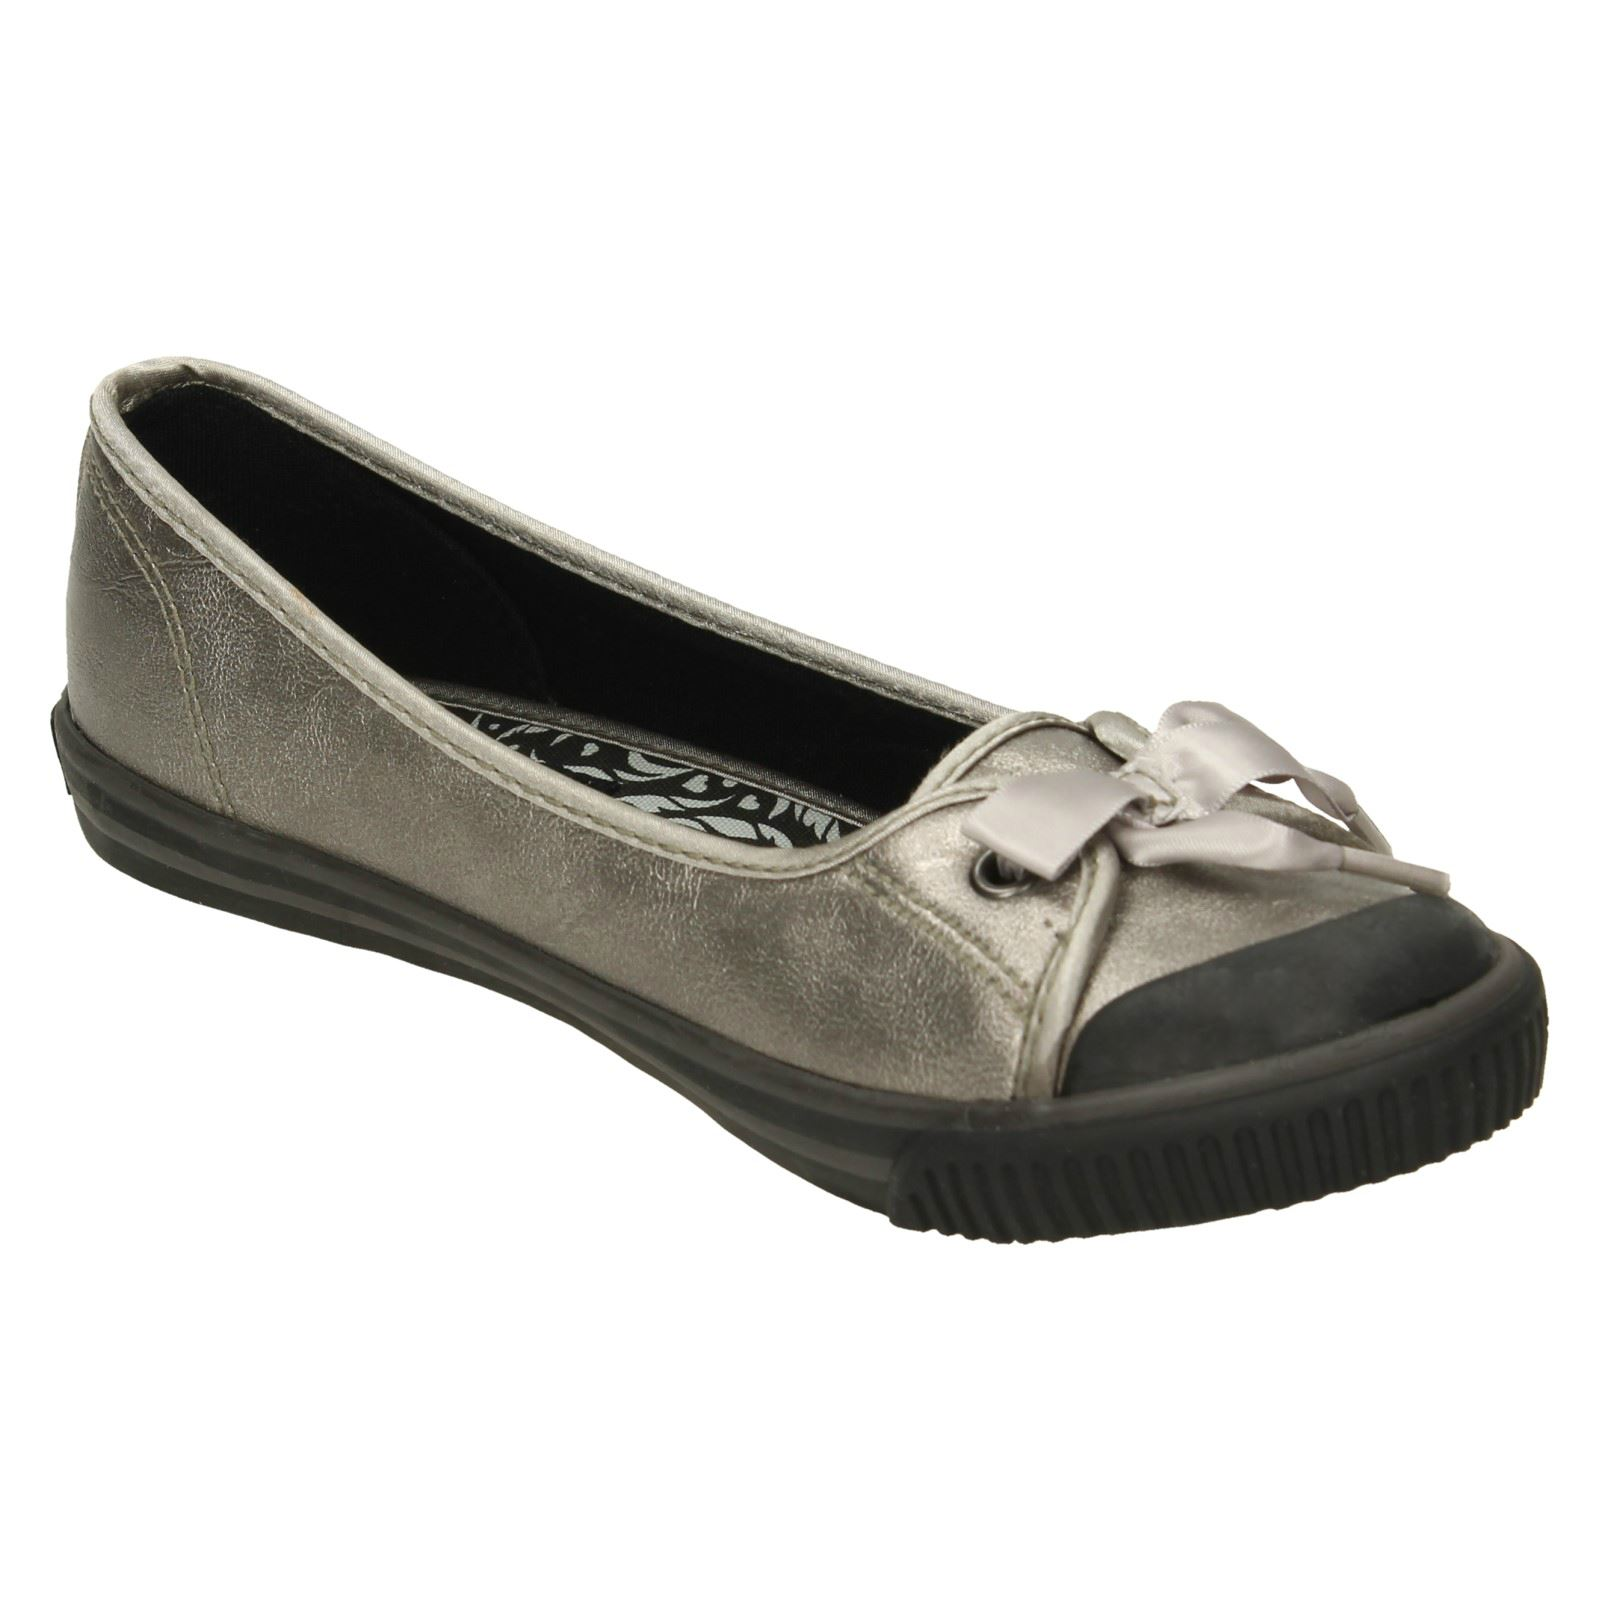 Girls-Startrite-Angry-Angel-Casual-Flat-Pumps-039-Diva-039 thumbnail 17